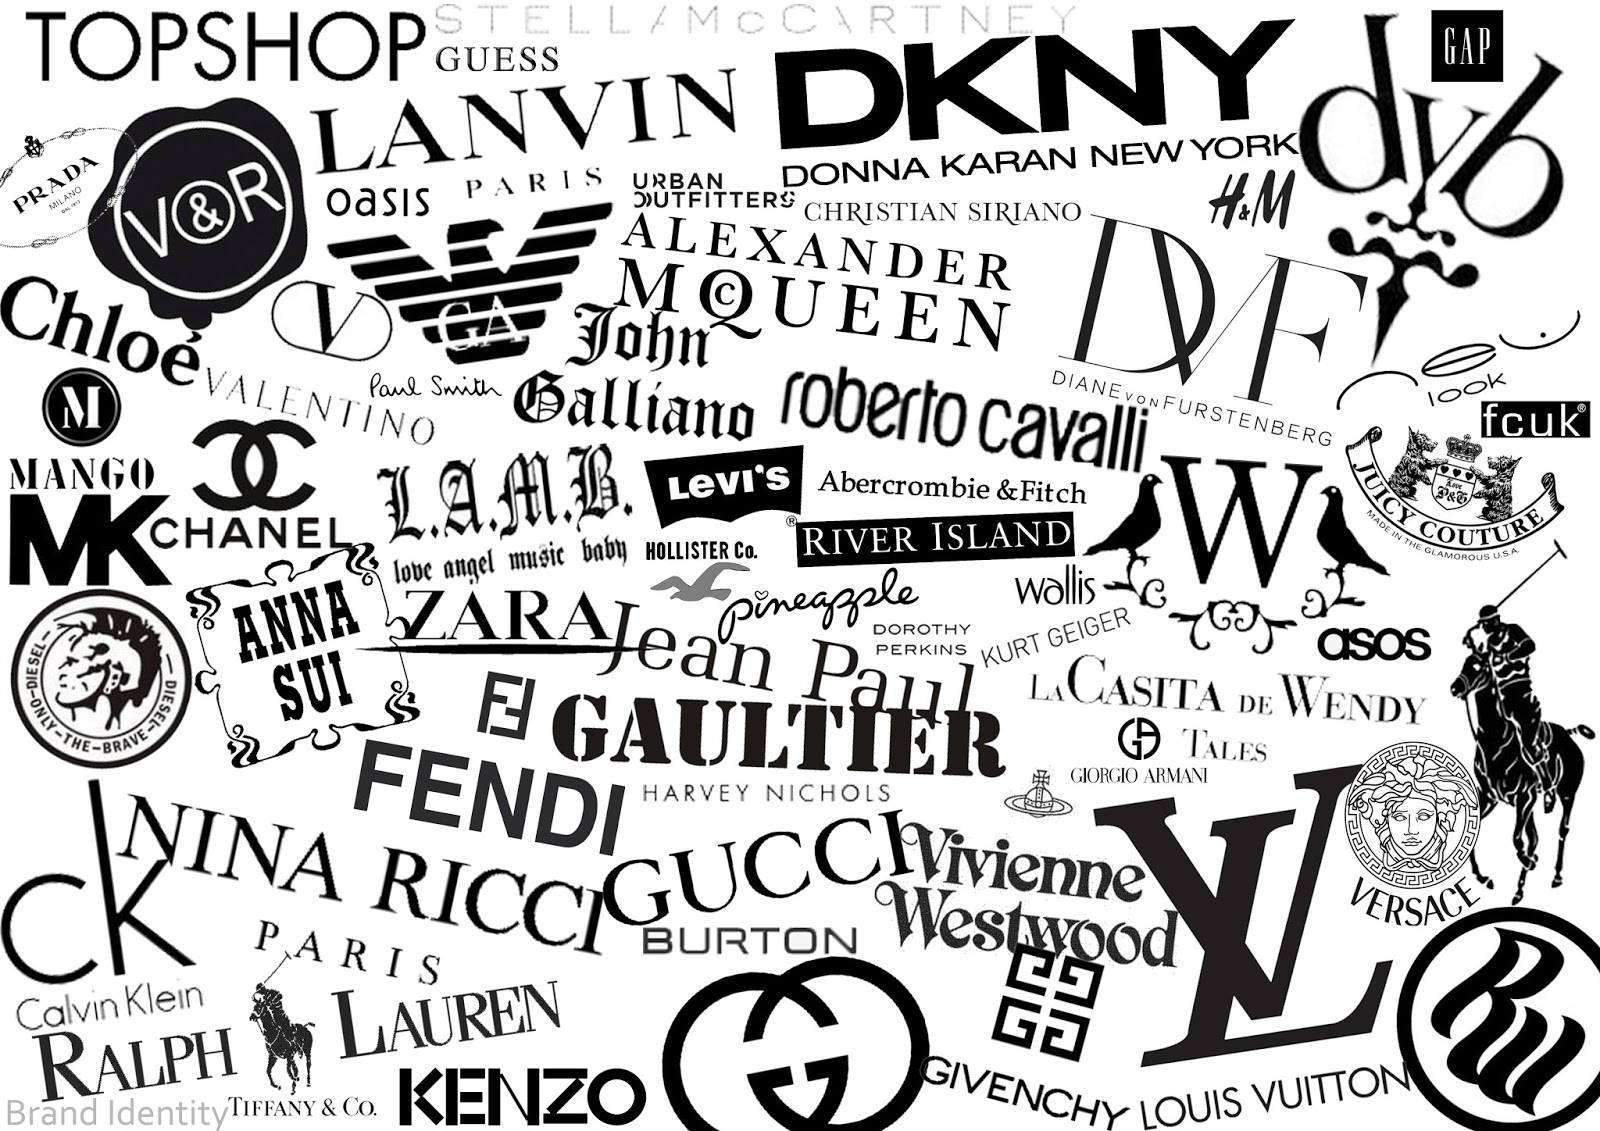 popular clothing brands fashion and designers